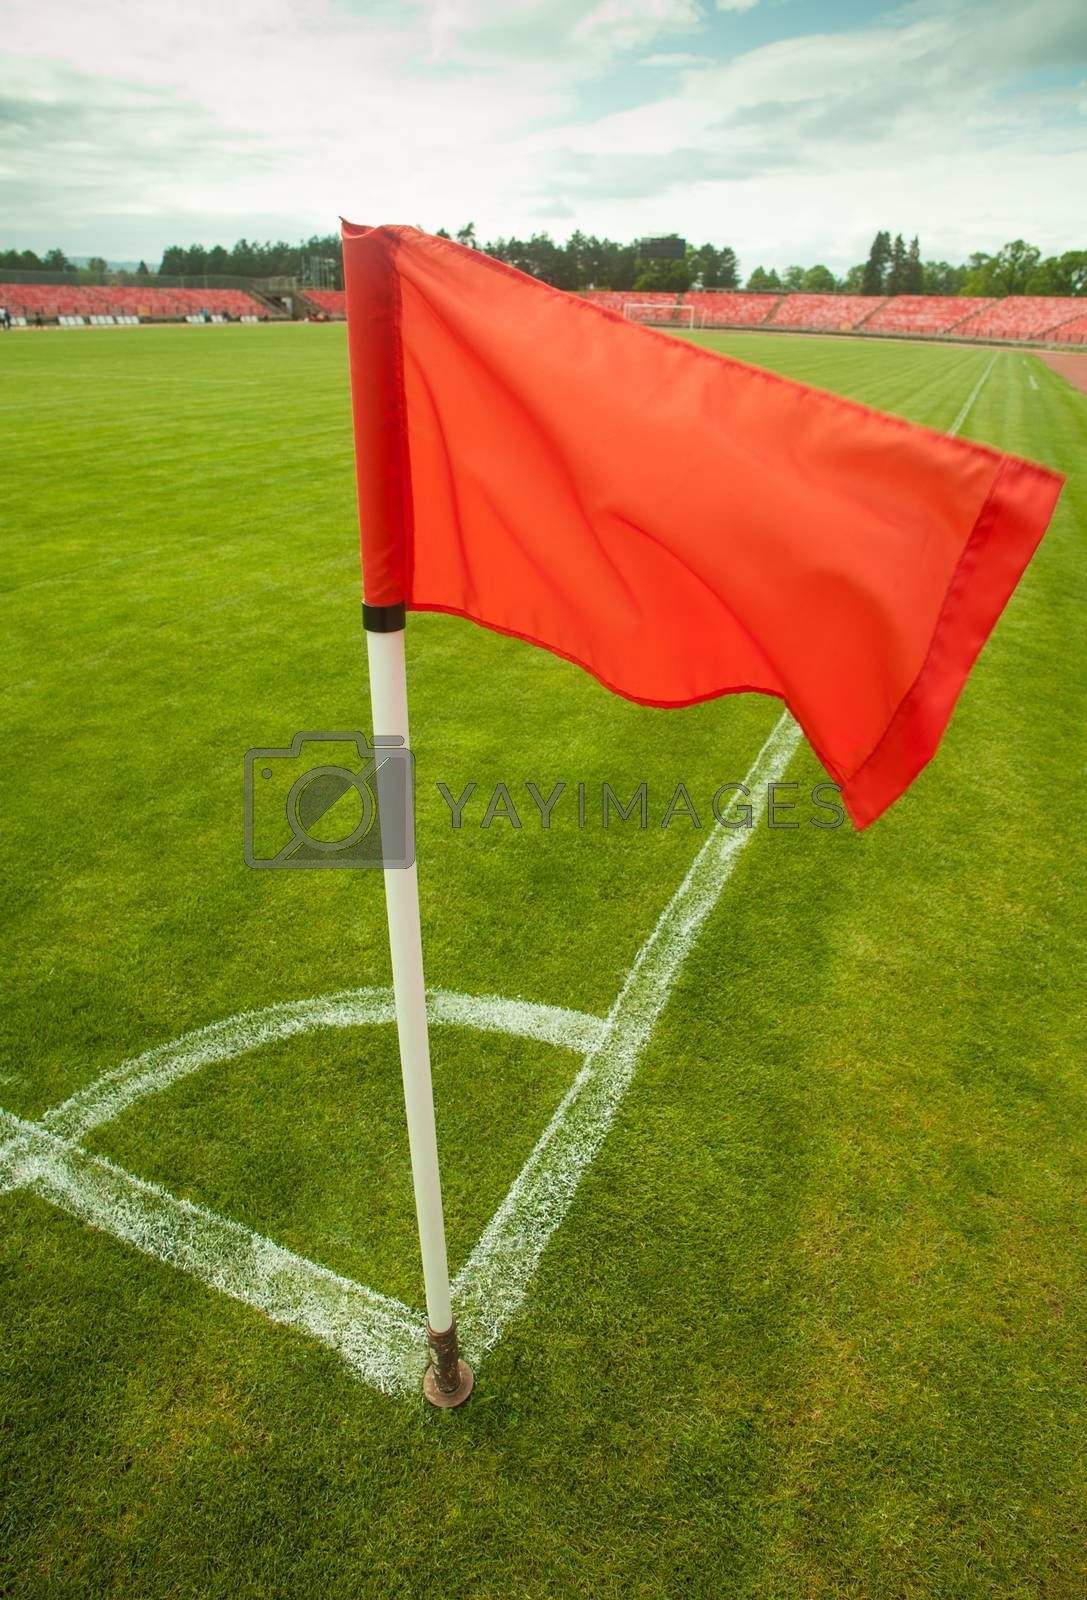 Royalty free image of red corner flag by IxMaster